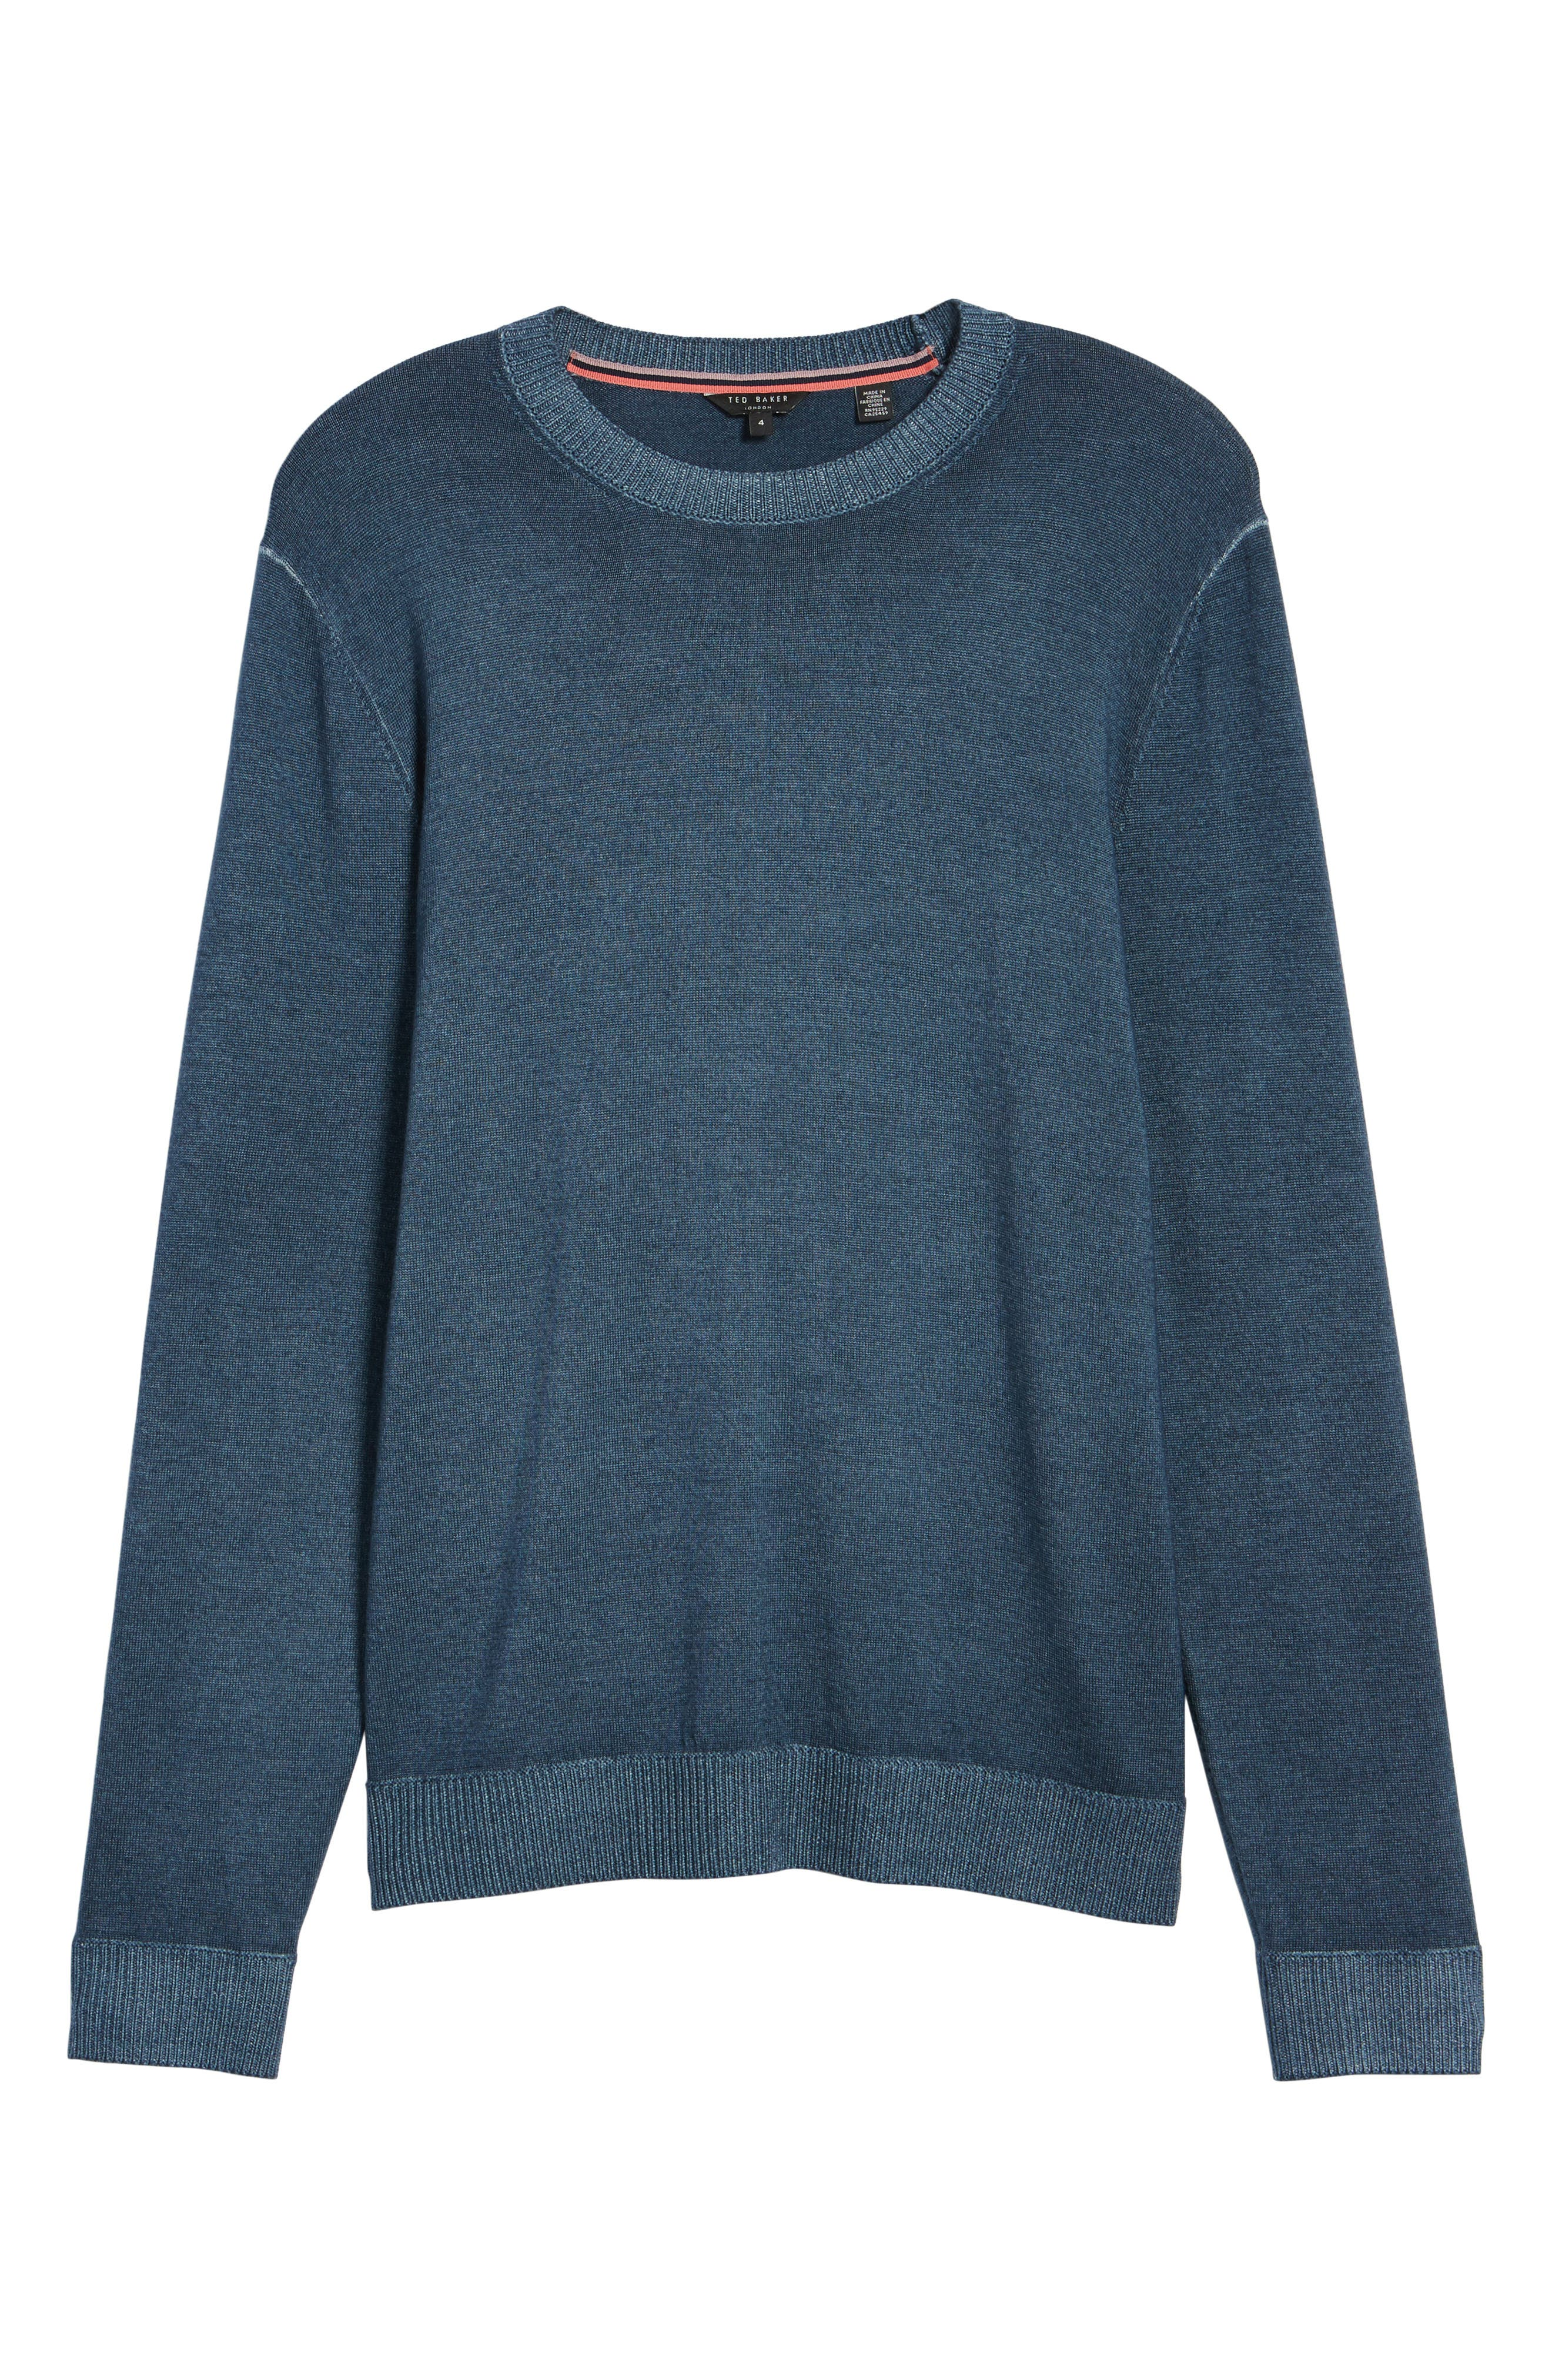 Lucky Trim Fit Wool Sweater,                             Alternate thumbnail 6, color,                             420